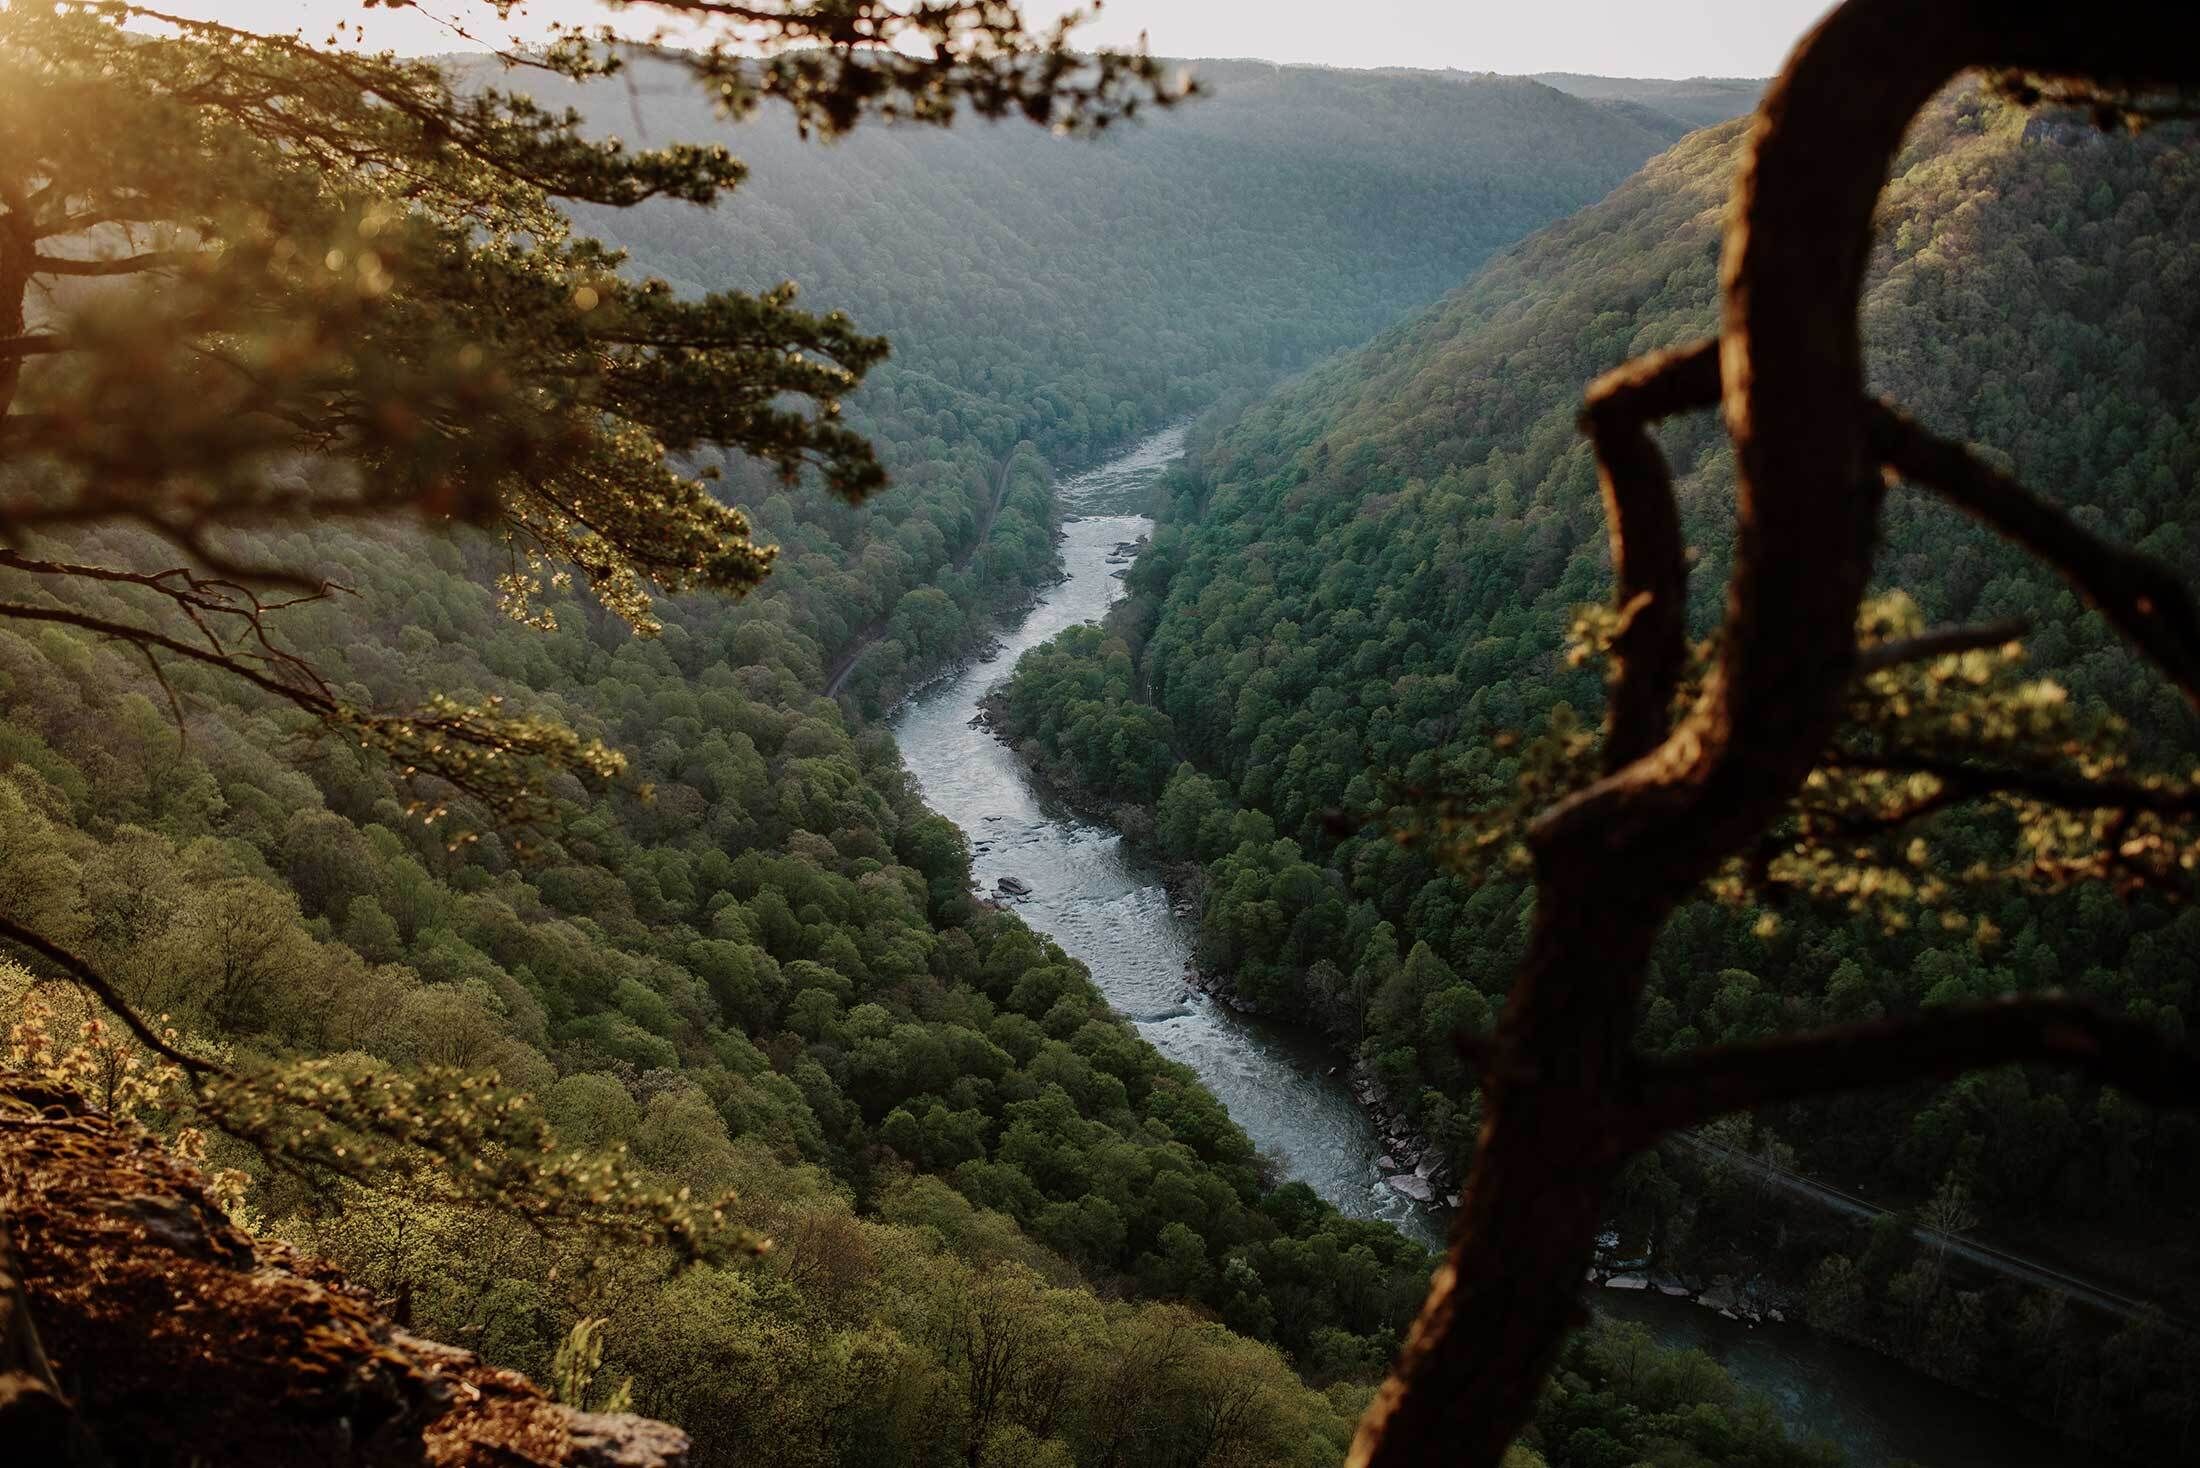 The New River Gorge in southern West Virginia. With the creation of a newnational park here, tourism in the region is expected to increase.